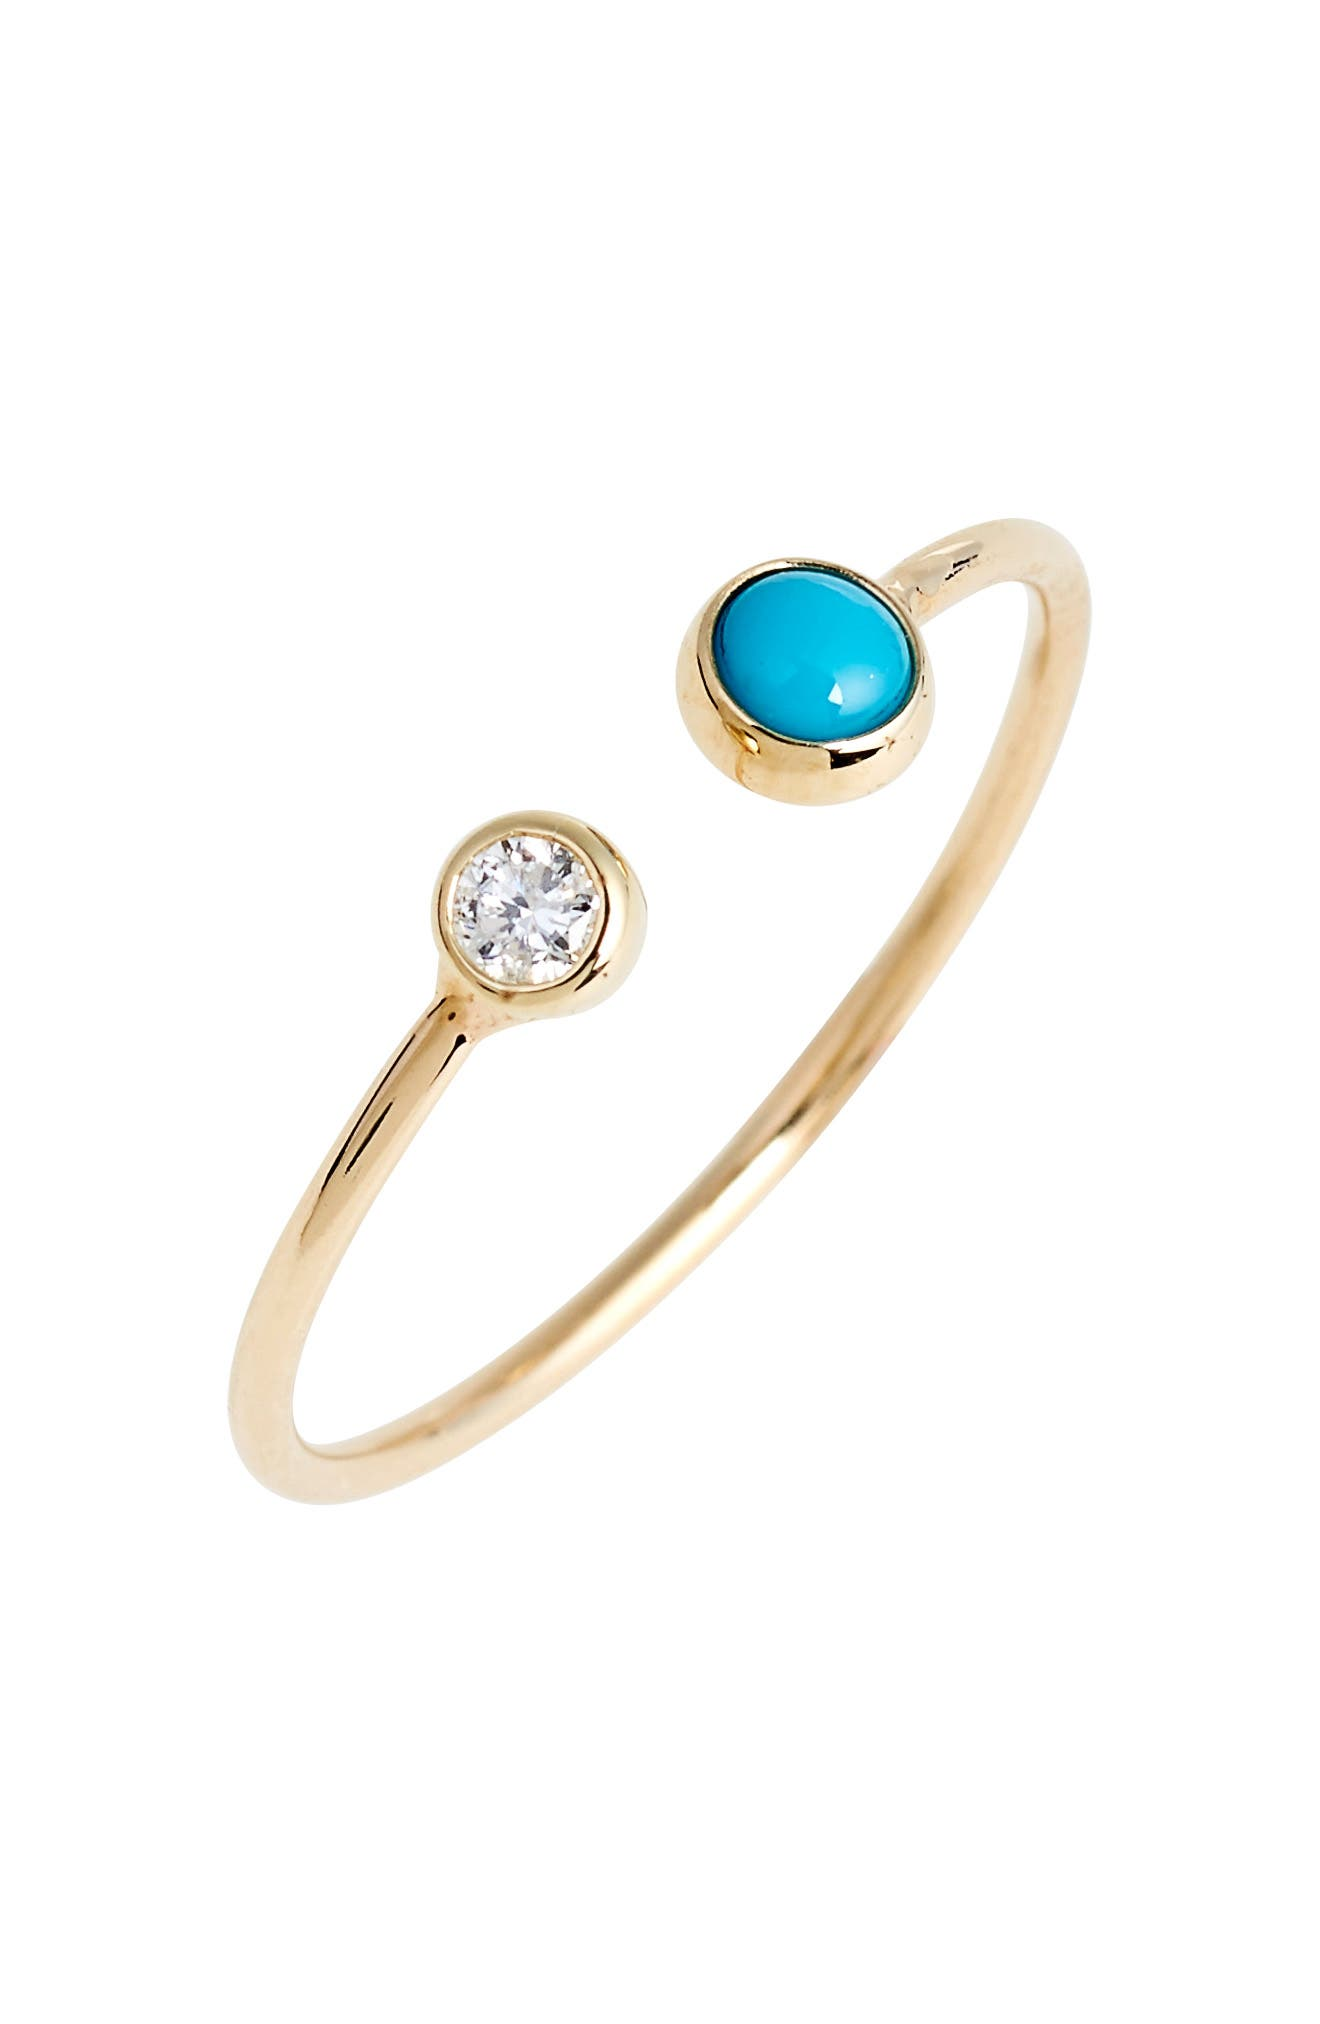 Diamond & Turquoise Open Stack Ring,                         Main,                         color, Yellow Gold/ Turquoise